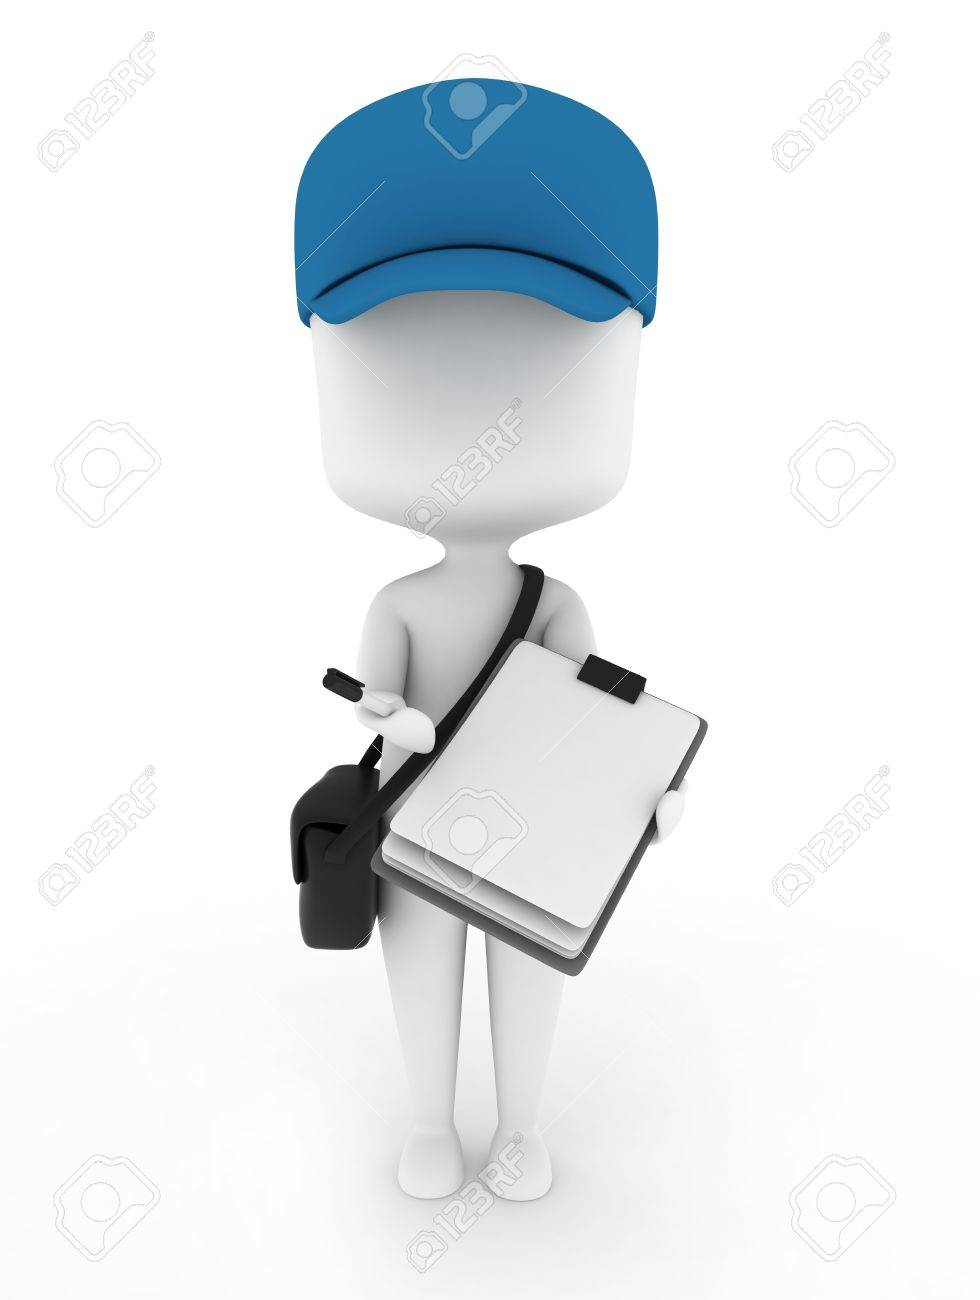 3D Illustration of a Delivery Guy presenting Paper for Signing Stock Illustration - 9307108